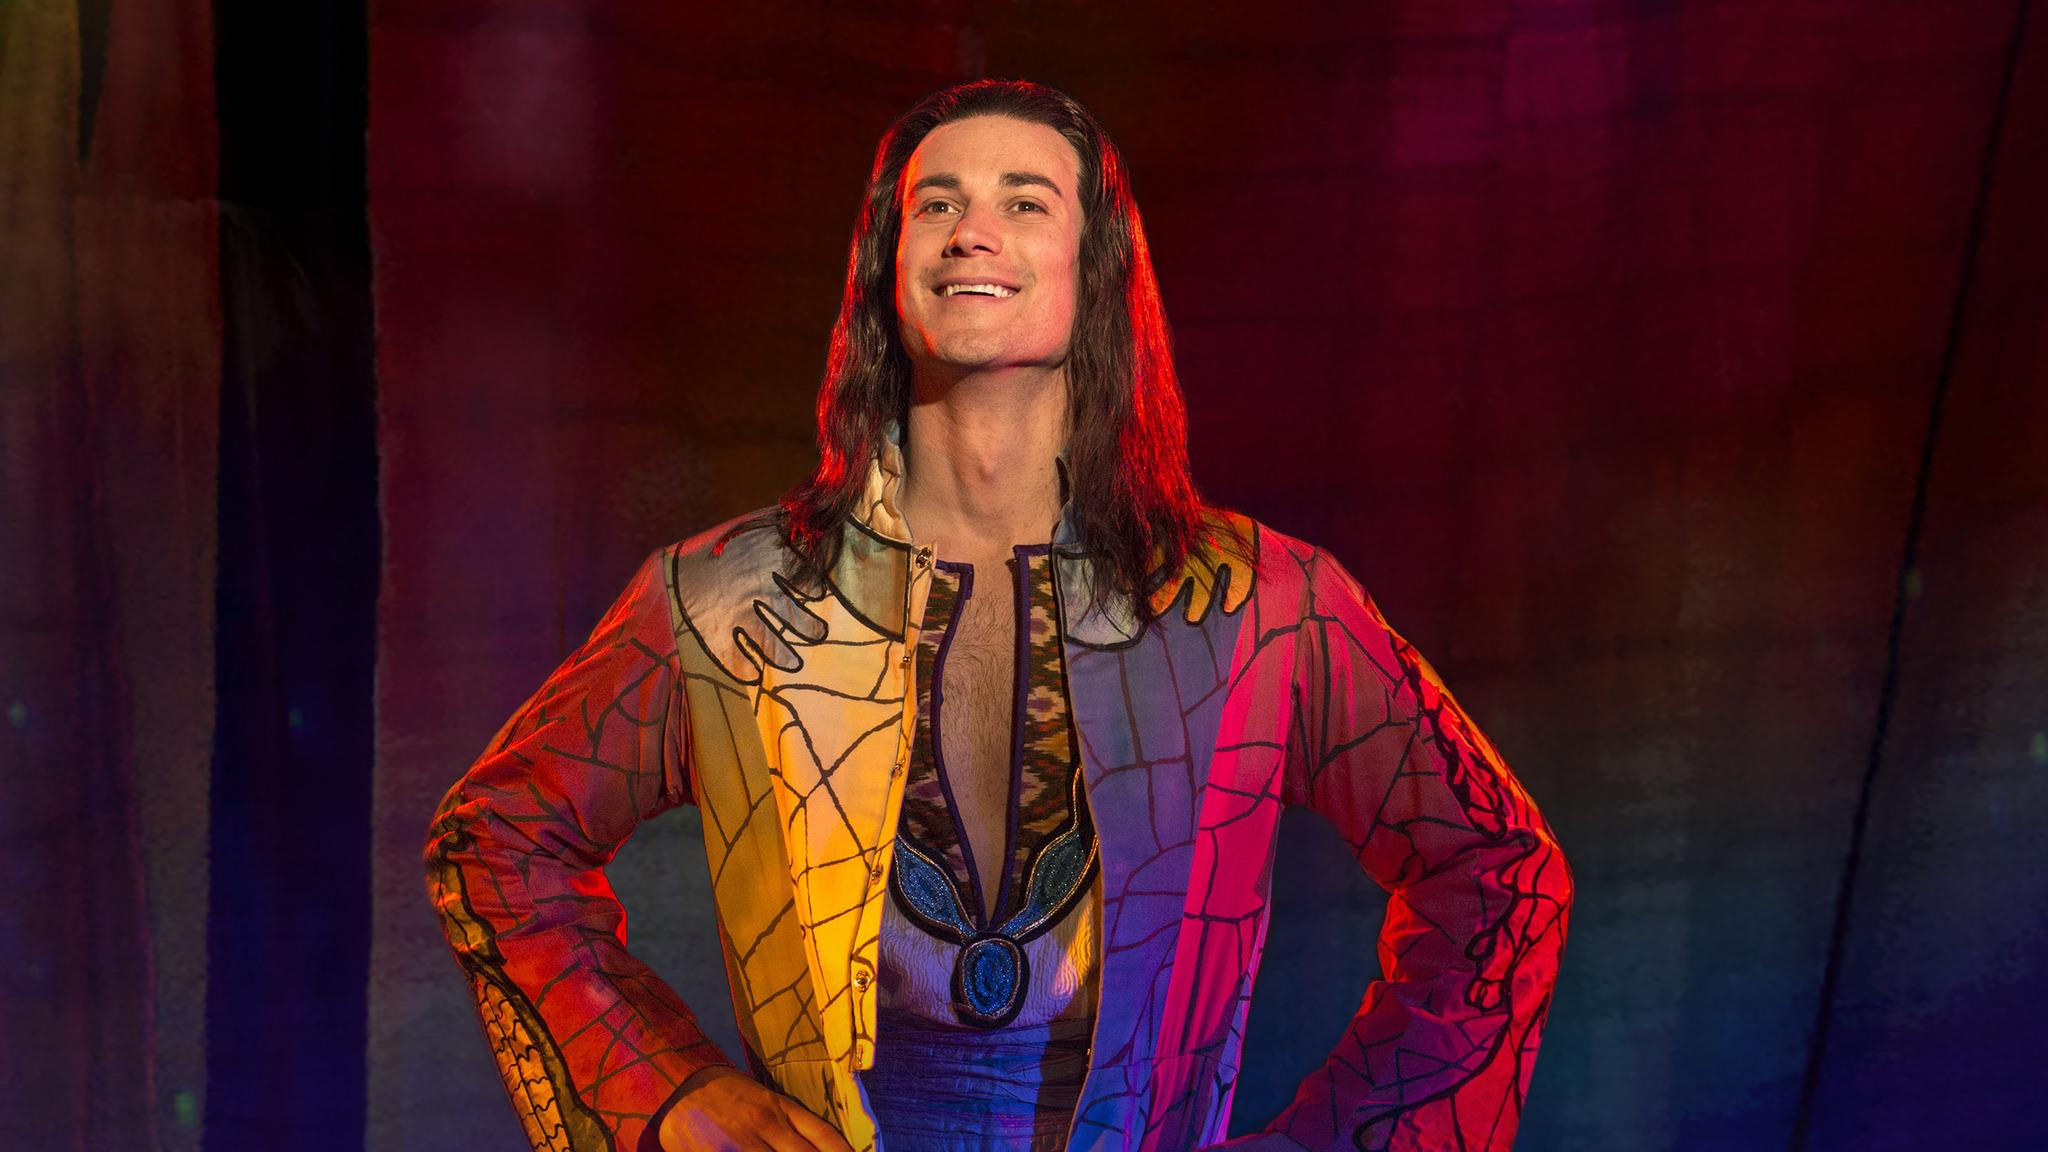 Joseph and the Amazing Technicolor Dreamcoat at Toby's Dinner Theatre